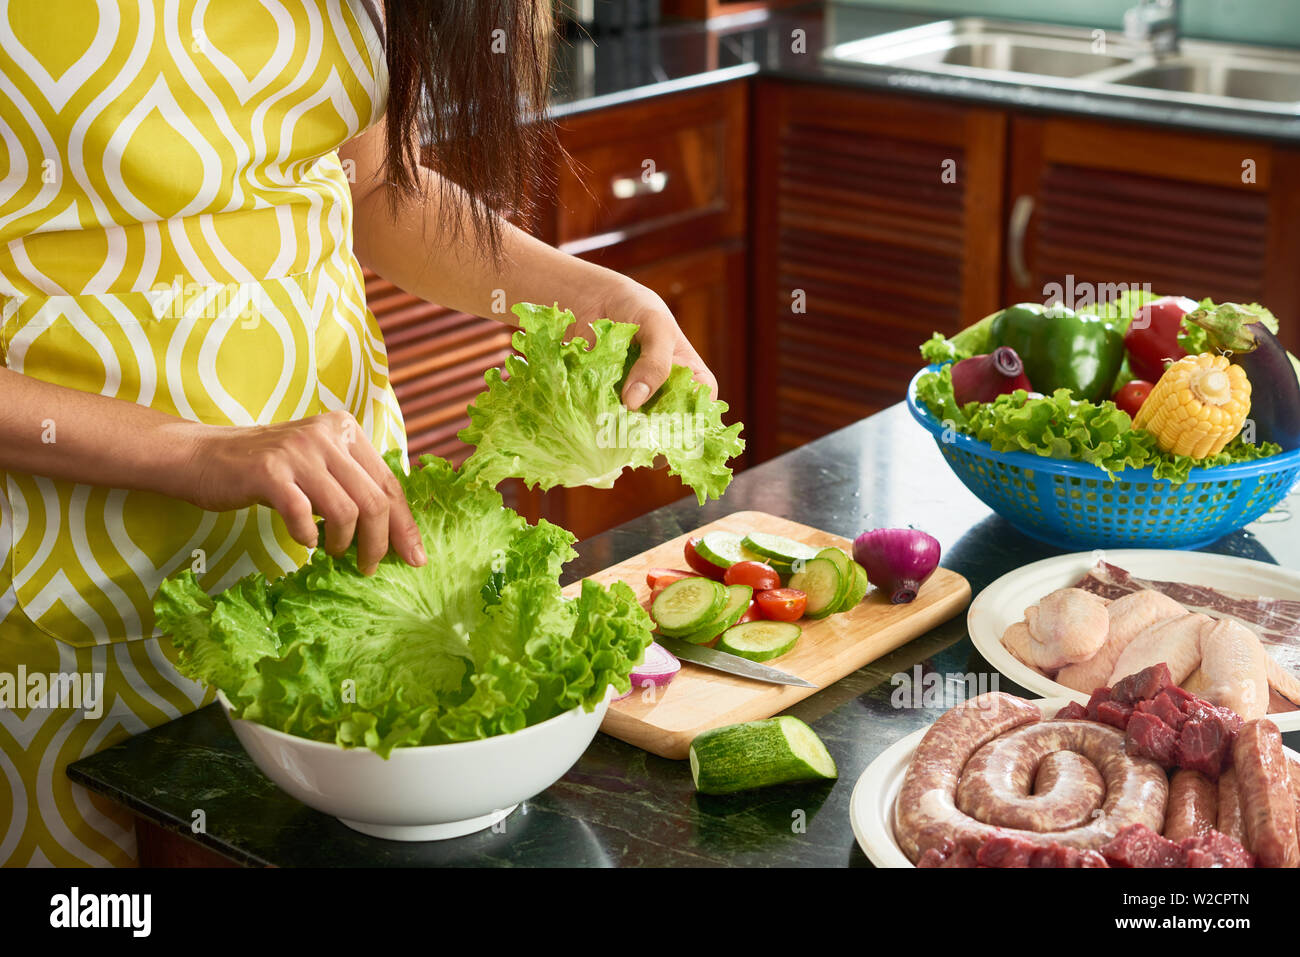 Stereotypical Housewife Stock Photos Stereotypical Housewife Stock